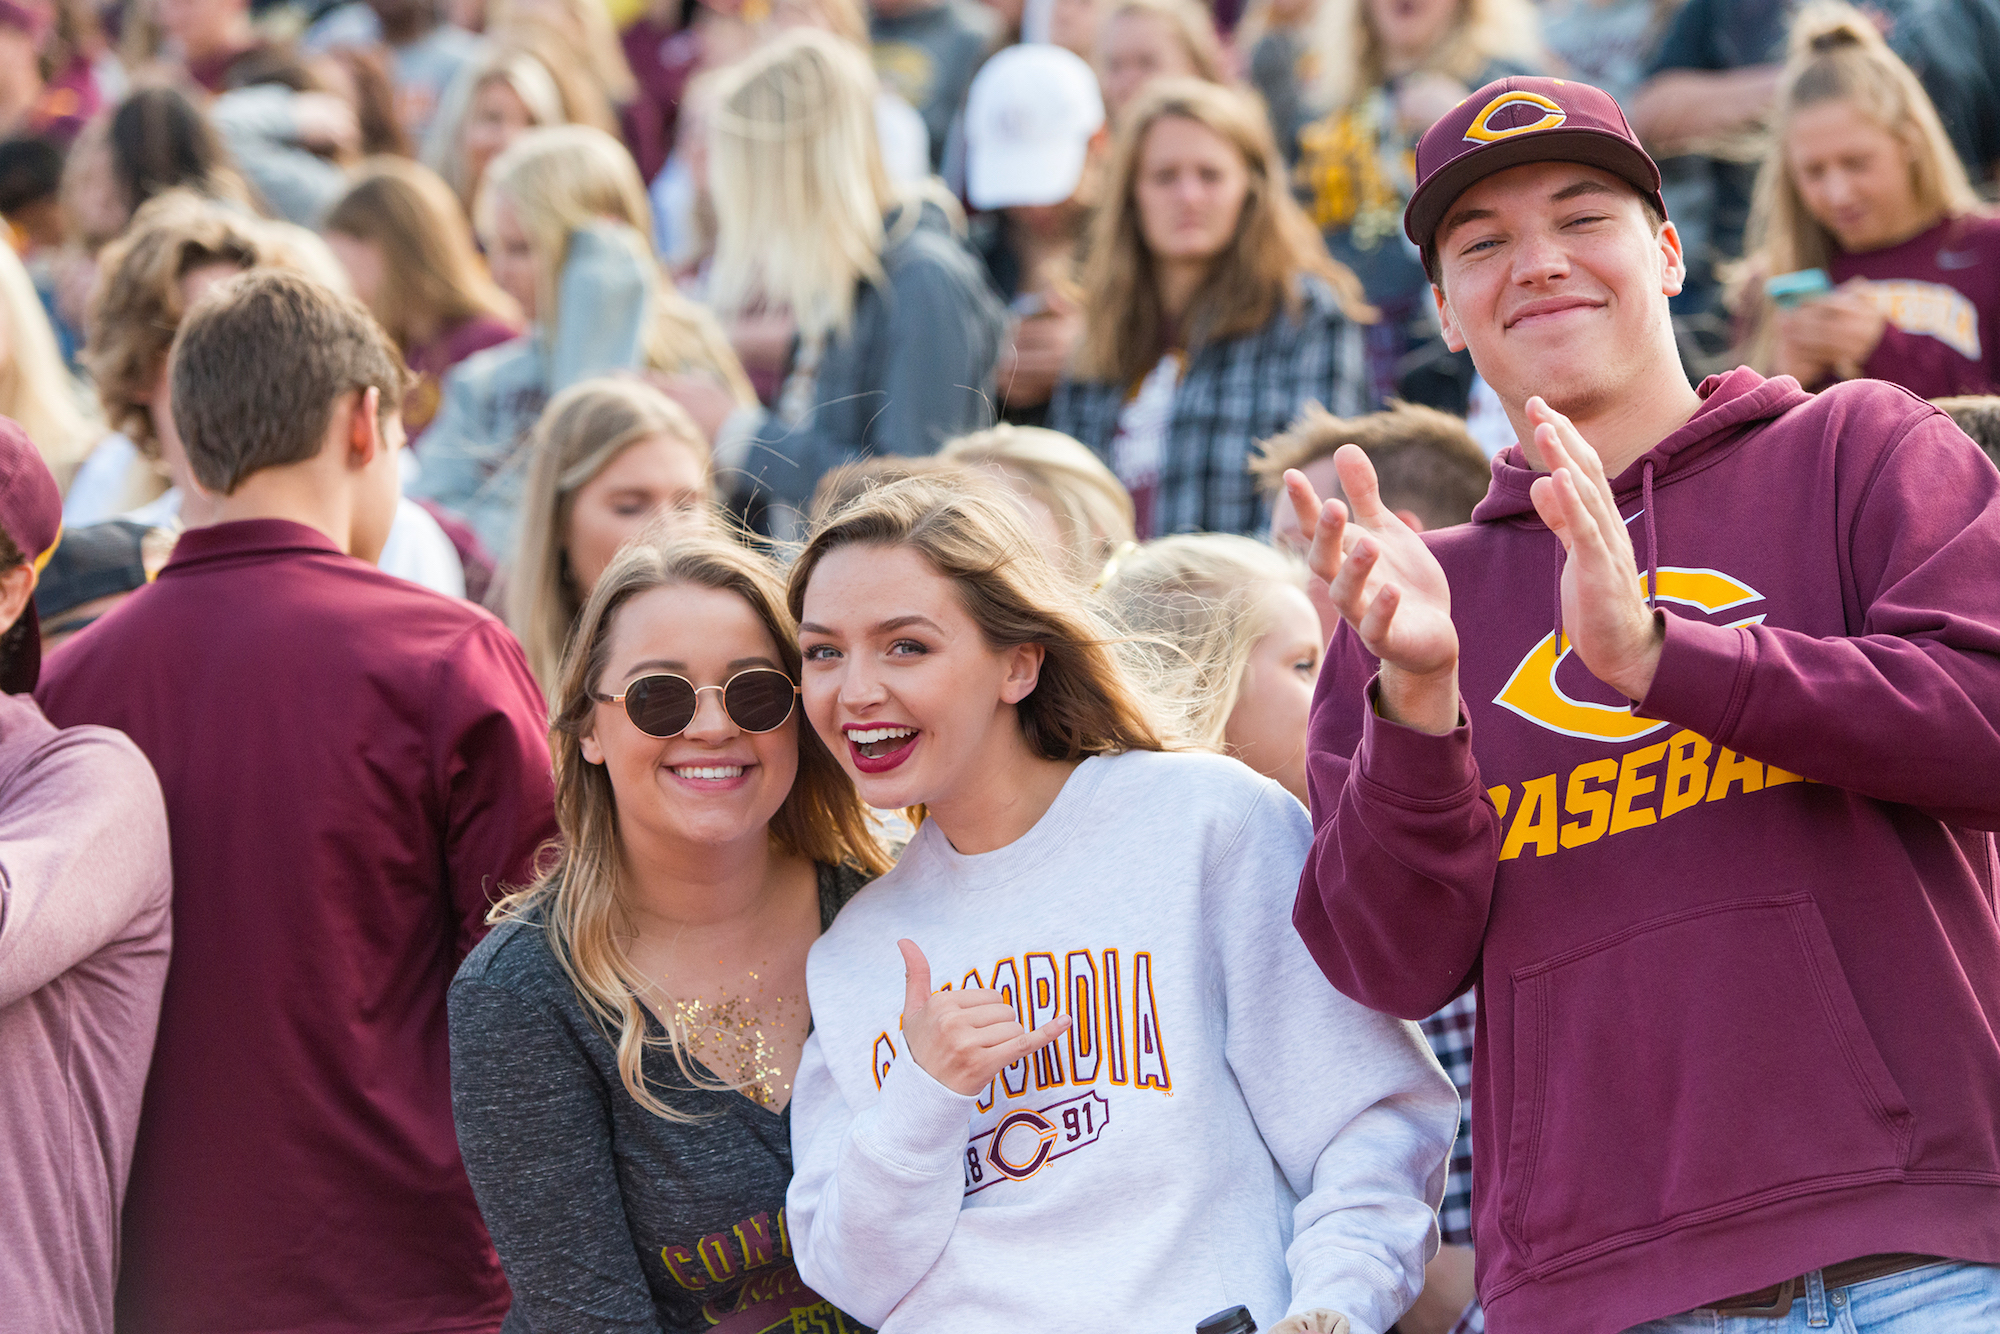 students posing and cheering in homecoming game crowd